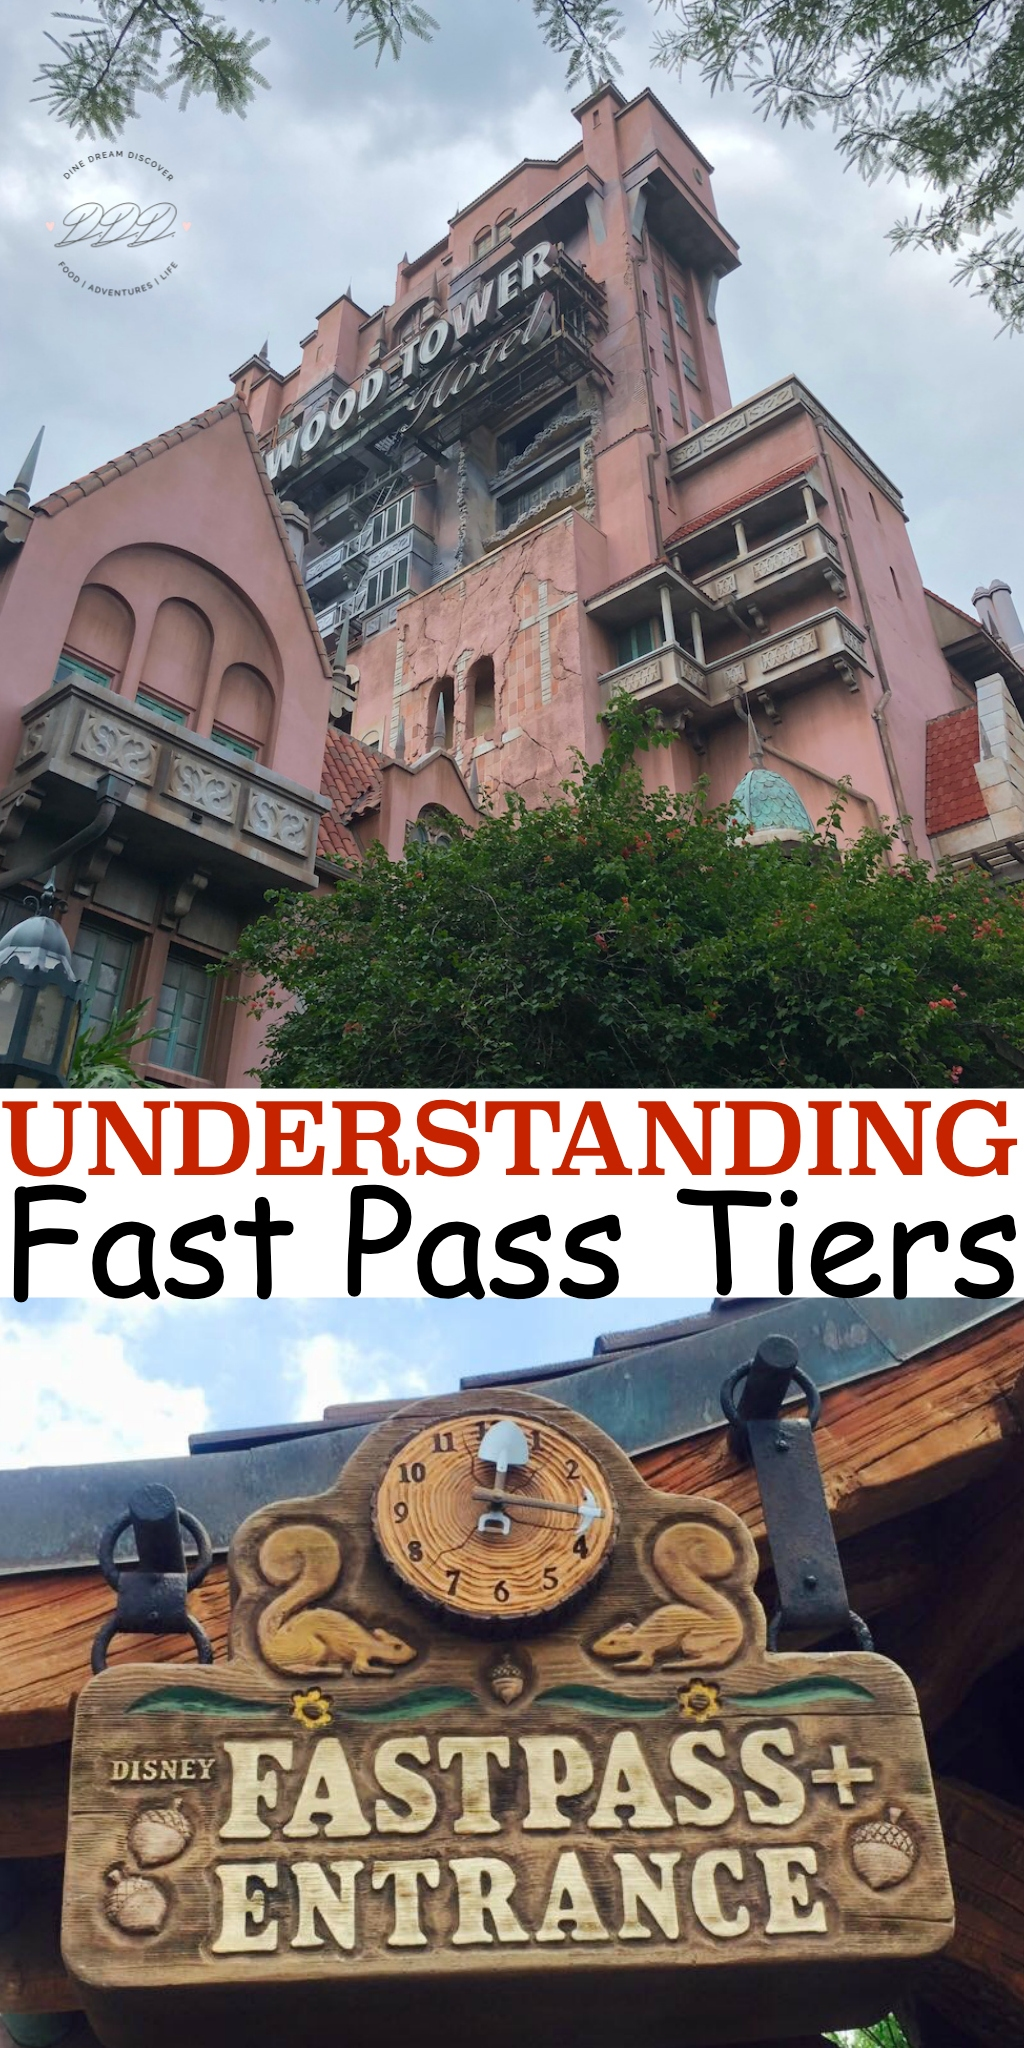 Today we are going to be going through what exactly each tier is and what rides and attractions are available for Fast Pass in that tier.